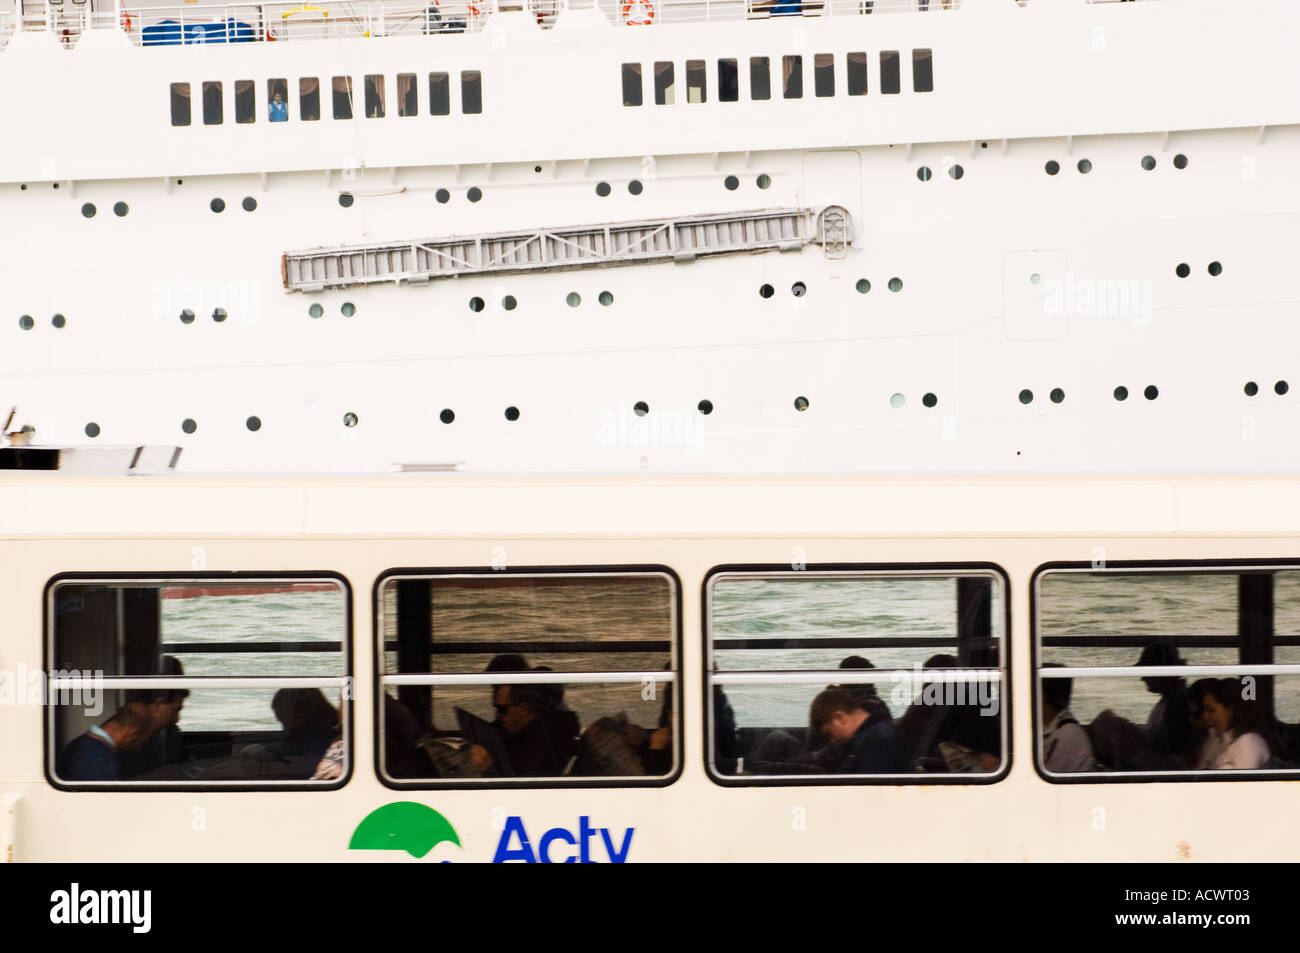 Sides of a small Venice Ferry Bus Boat full of commuters and a large cruise ship passing each other - Stock Image